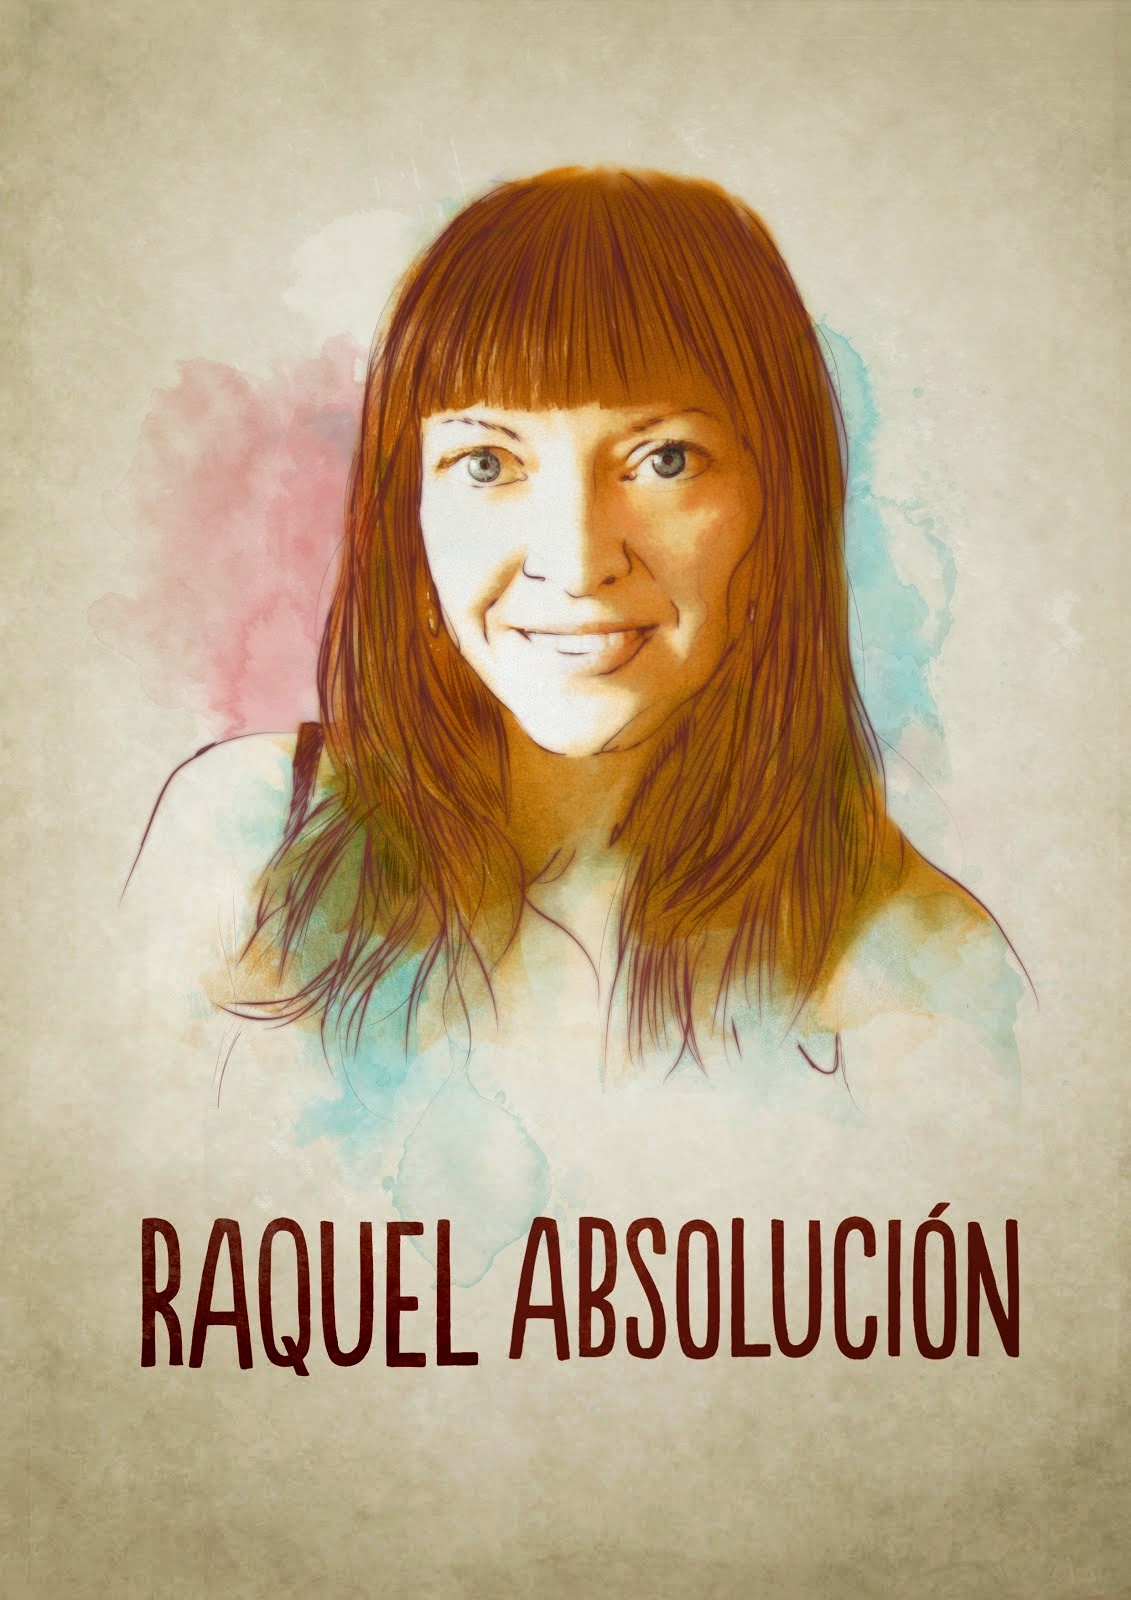 Alegato en defensa del honor de Raquel